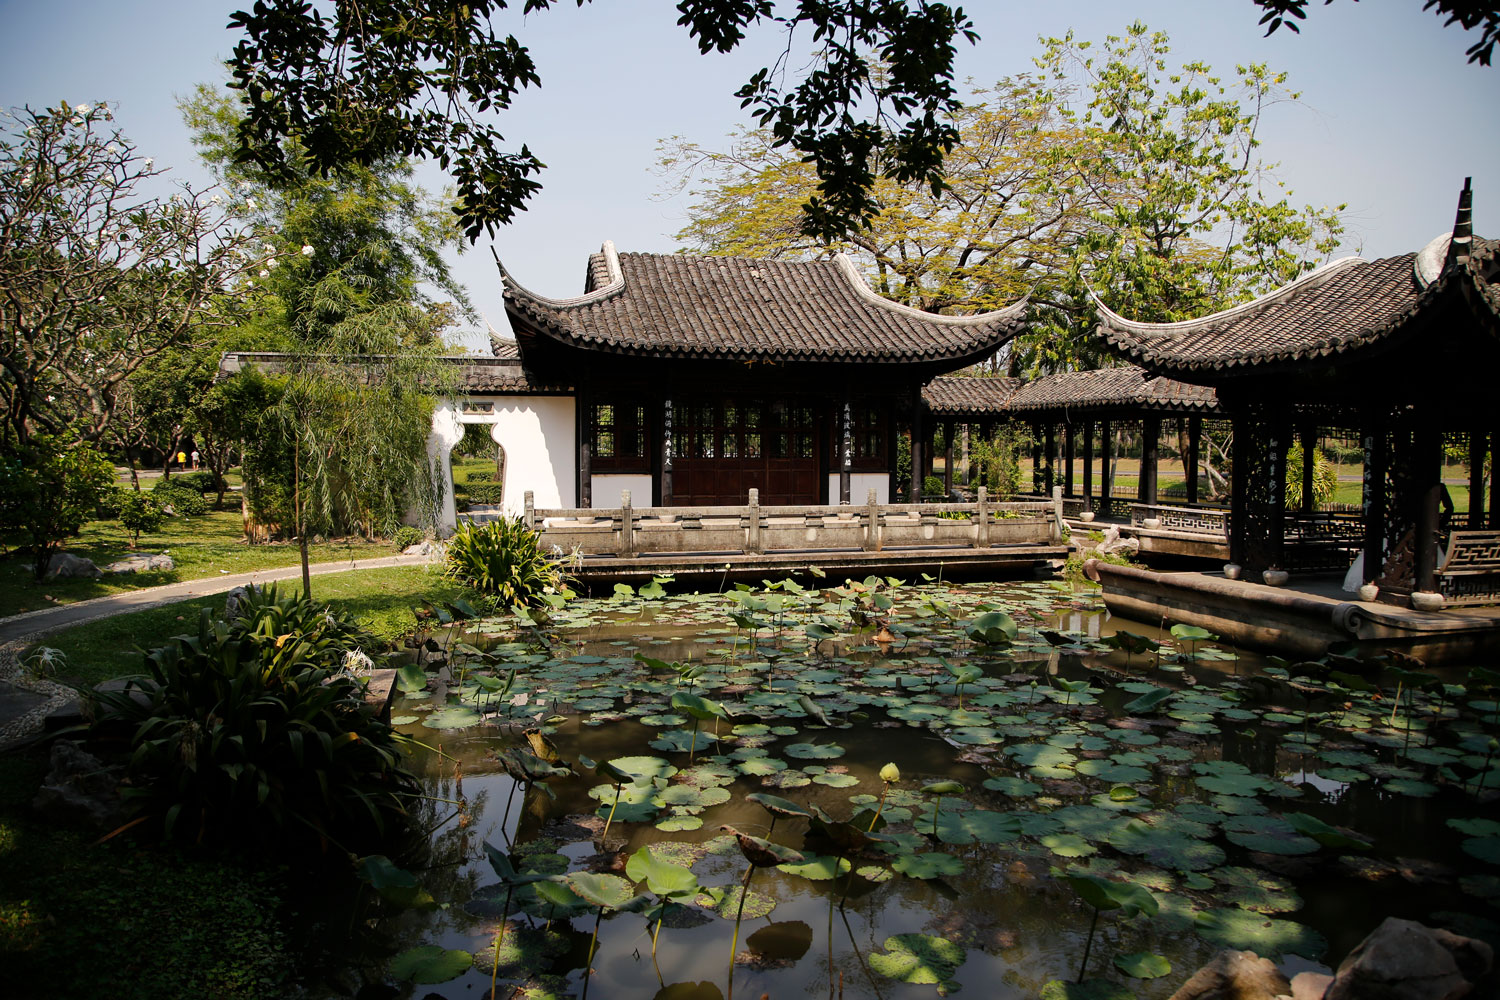 Temple pond filming location in Bangkok Thailand